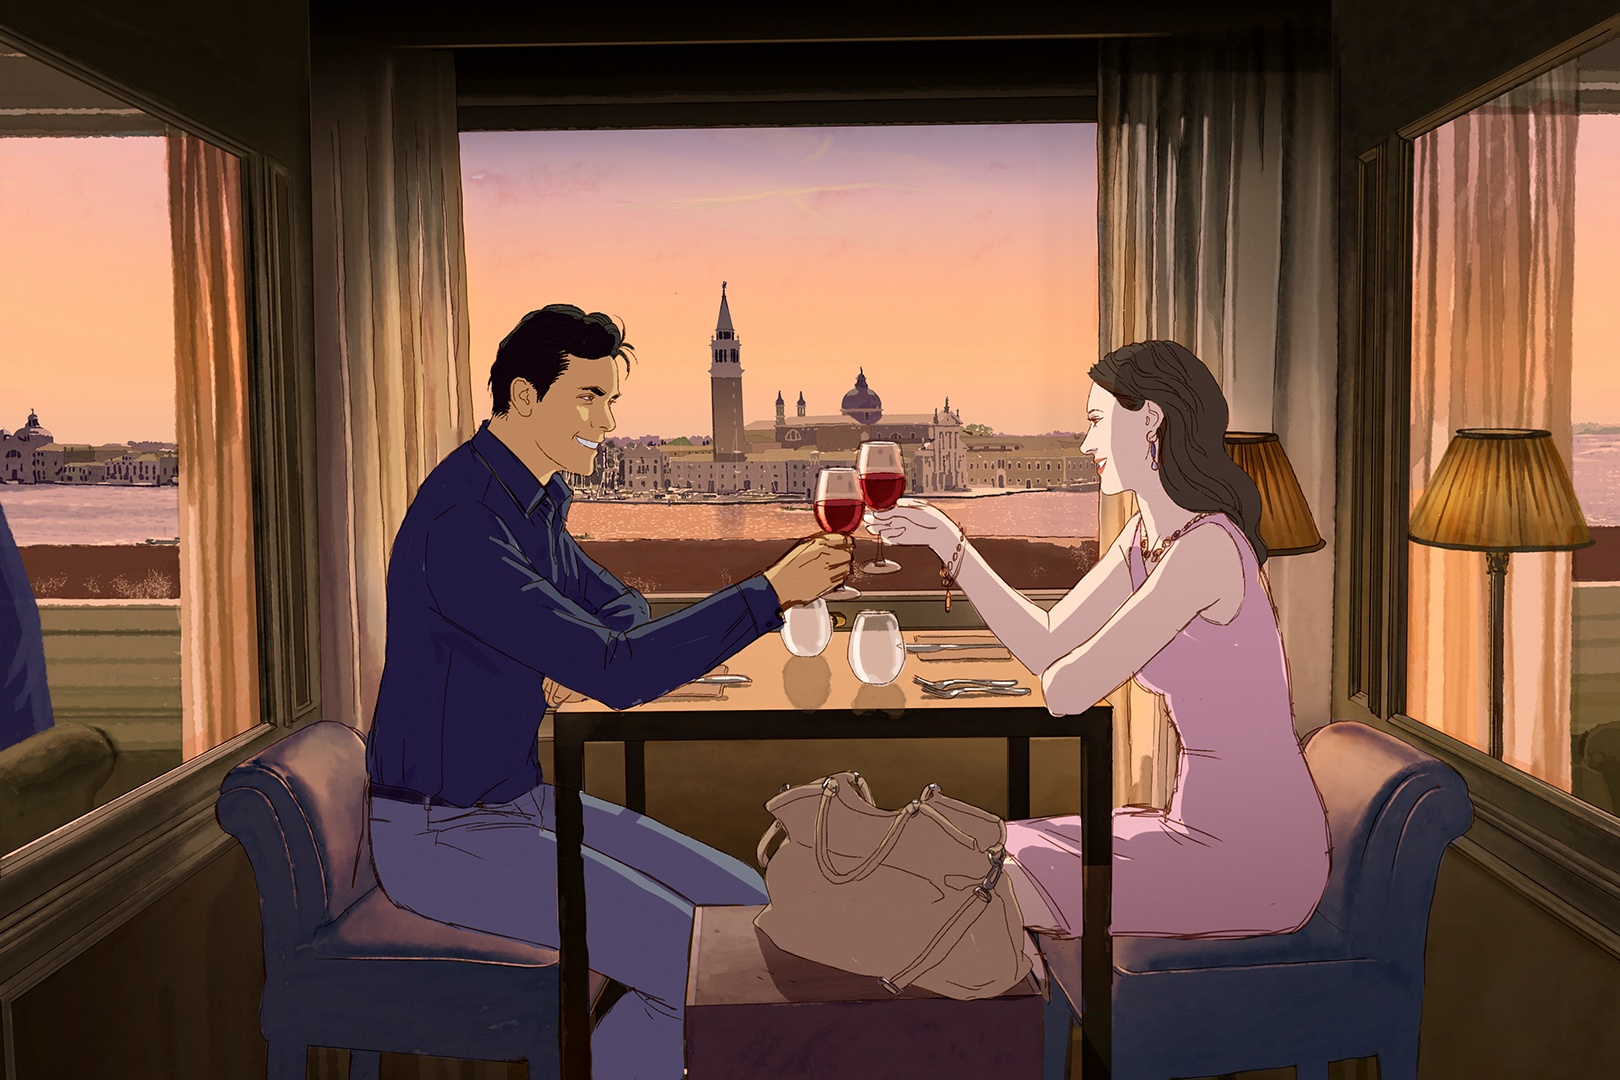 man and woman having dinner with overlooking view of Big Ben